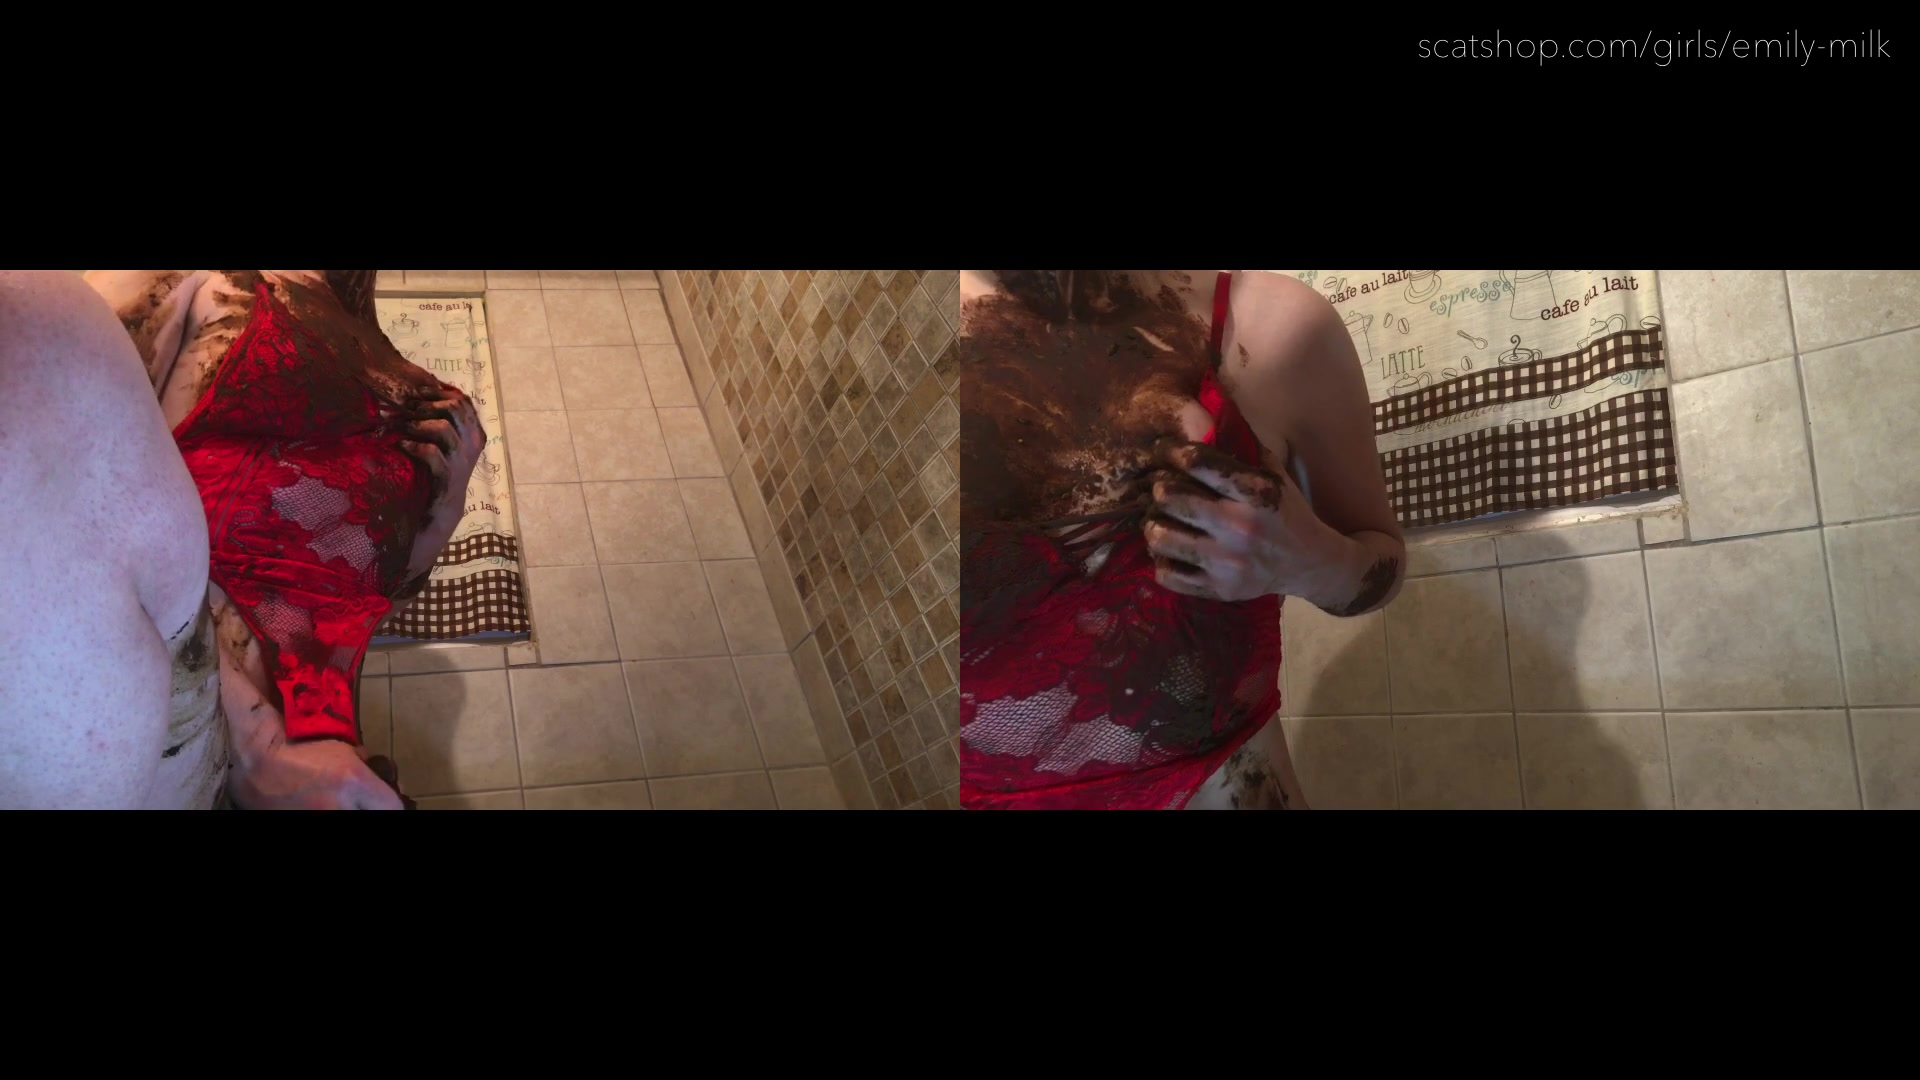 Messy_Shower_Poo_Hd-1080p_Scatshop_.00001.jpg